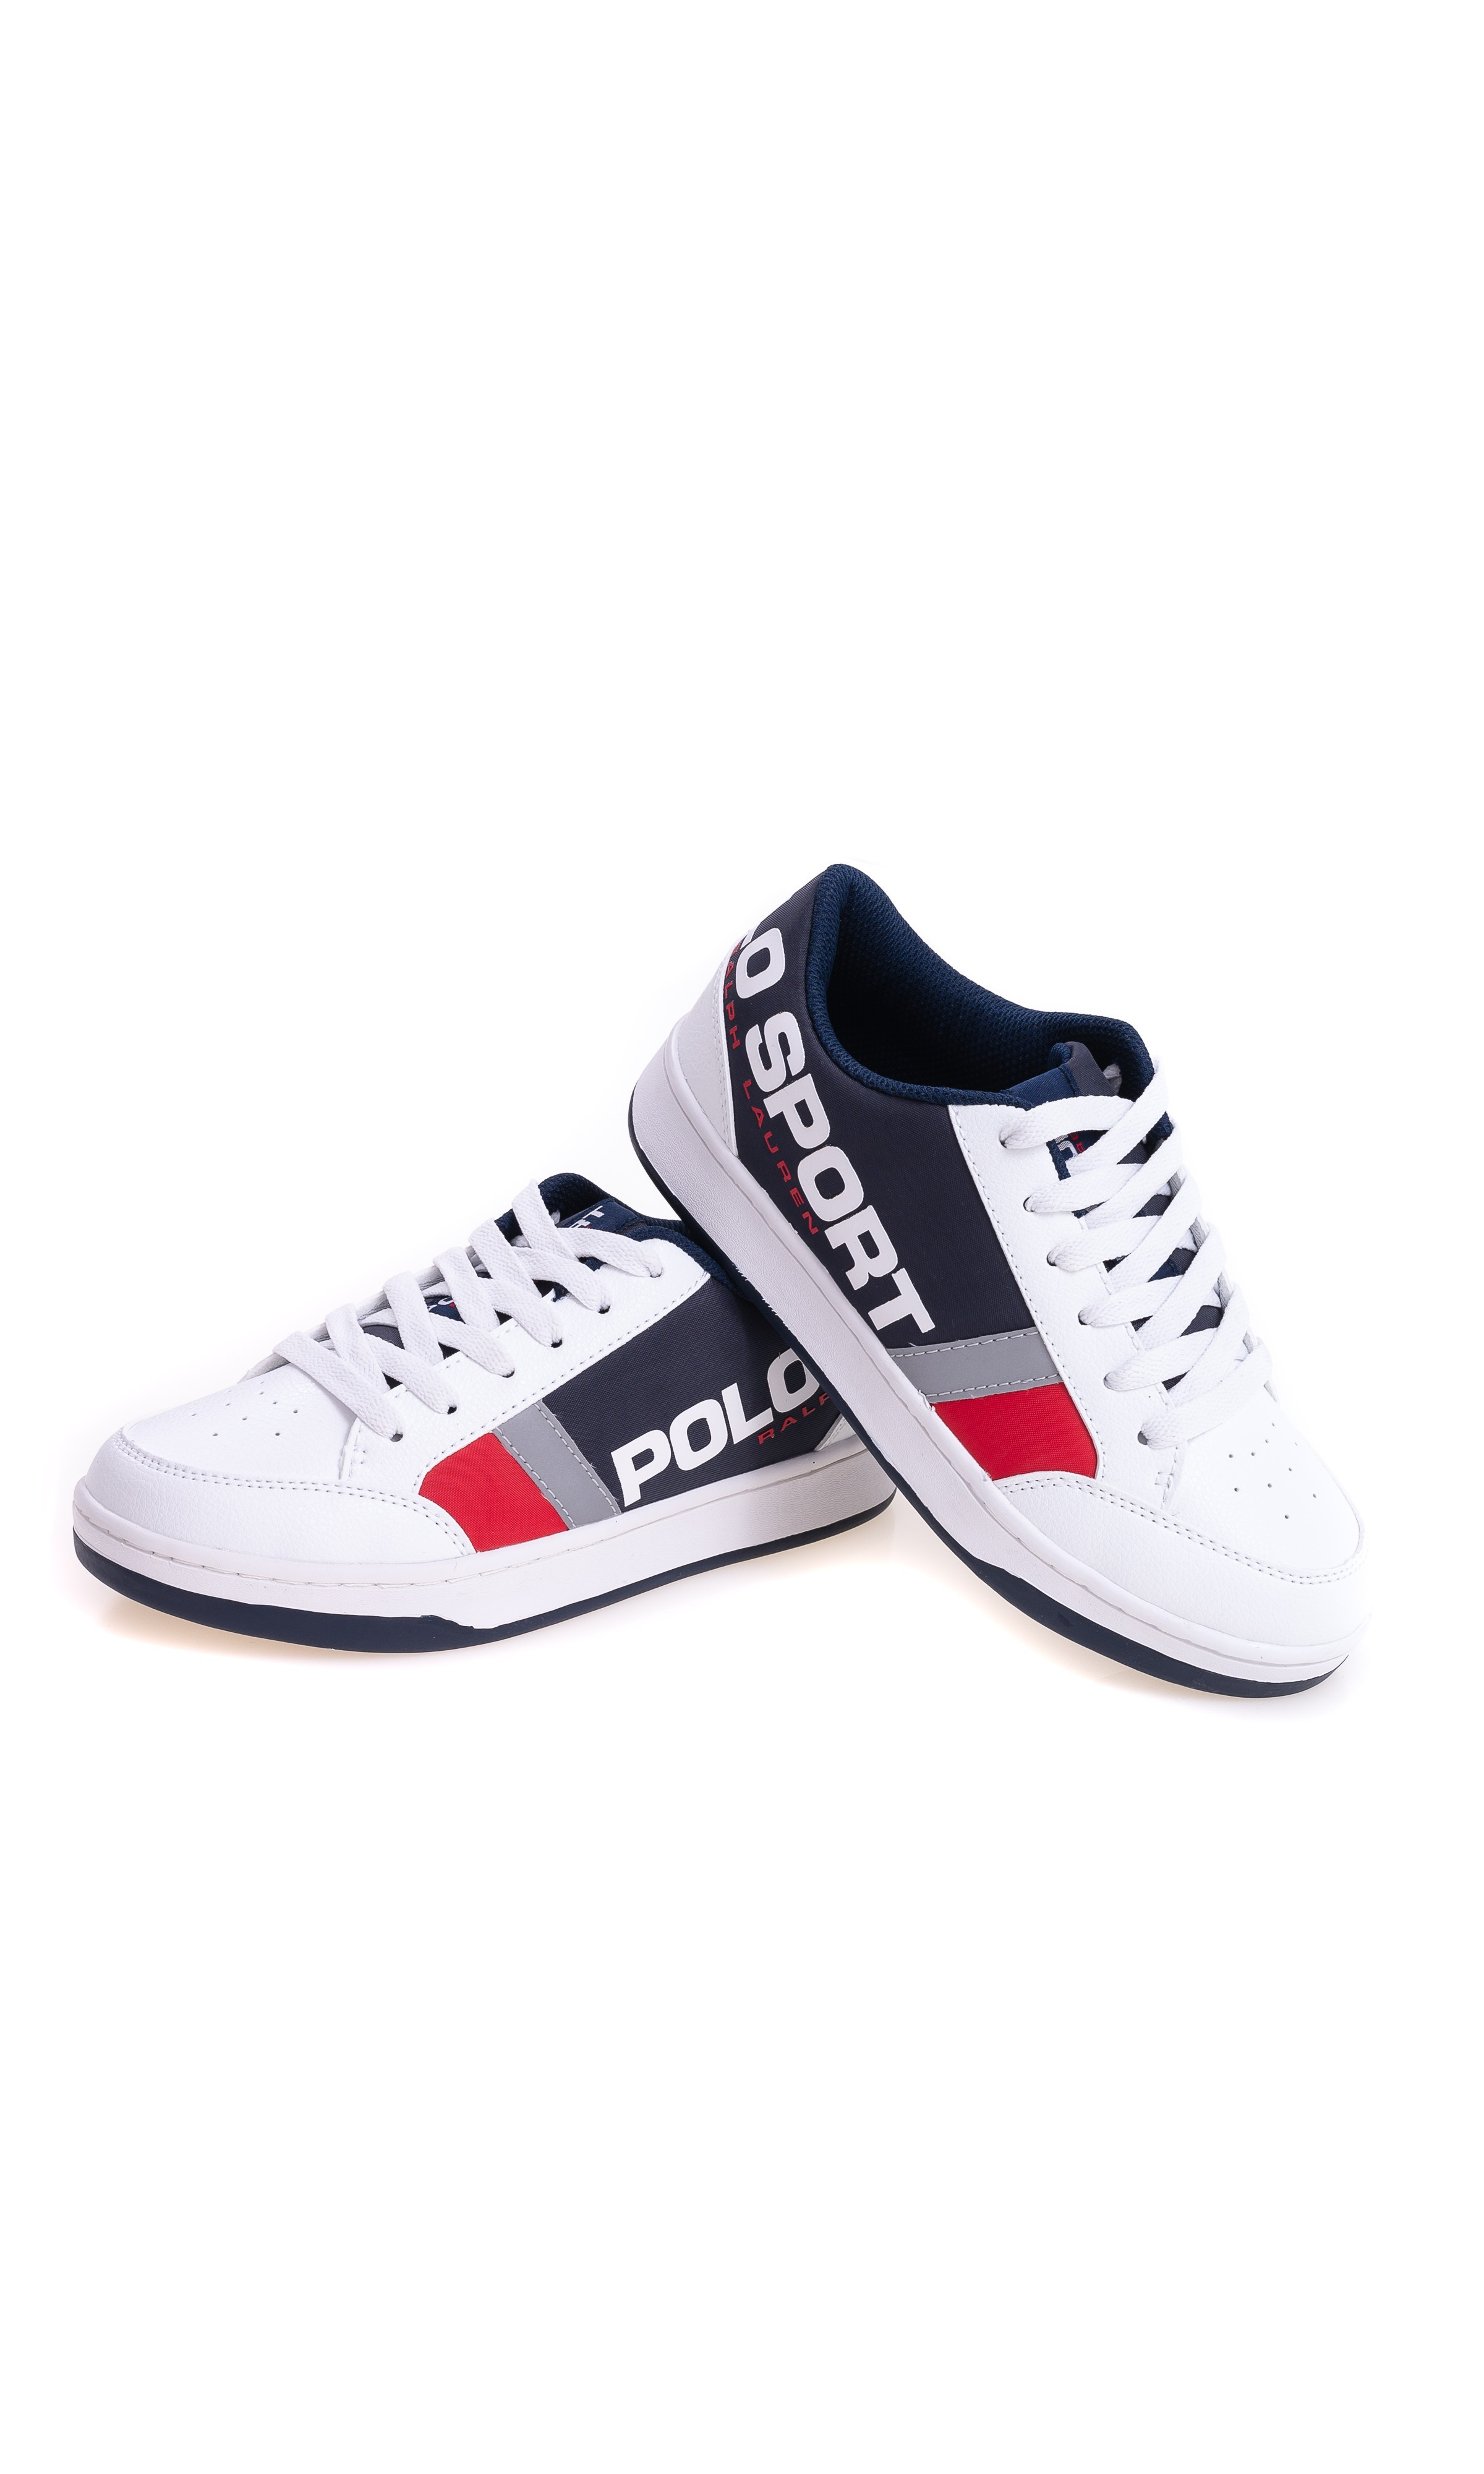 White Navy Blue Sports Shoes For Boys Polo Ralph Lauren Celebrity Club